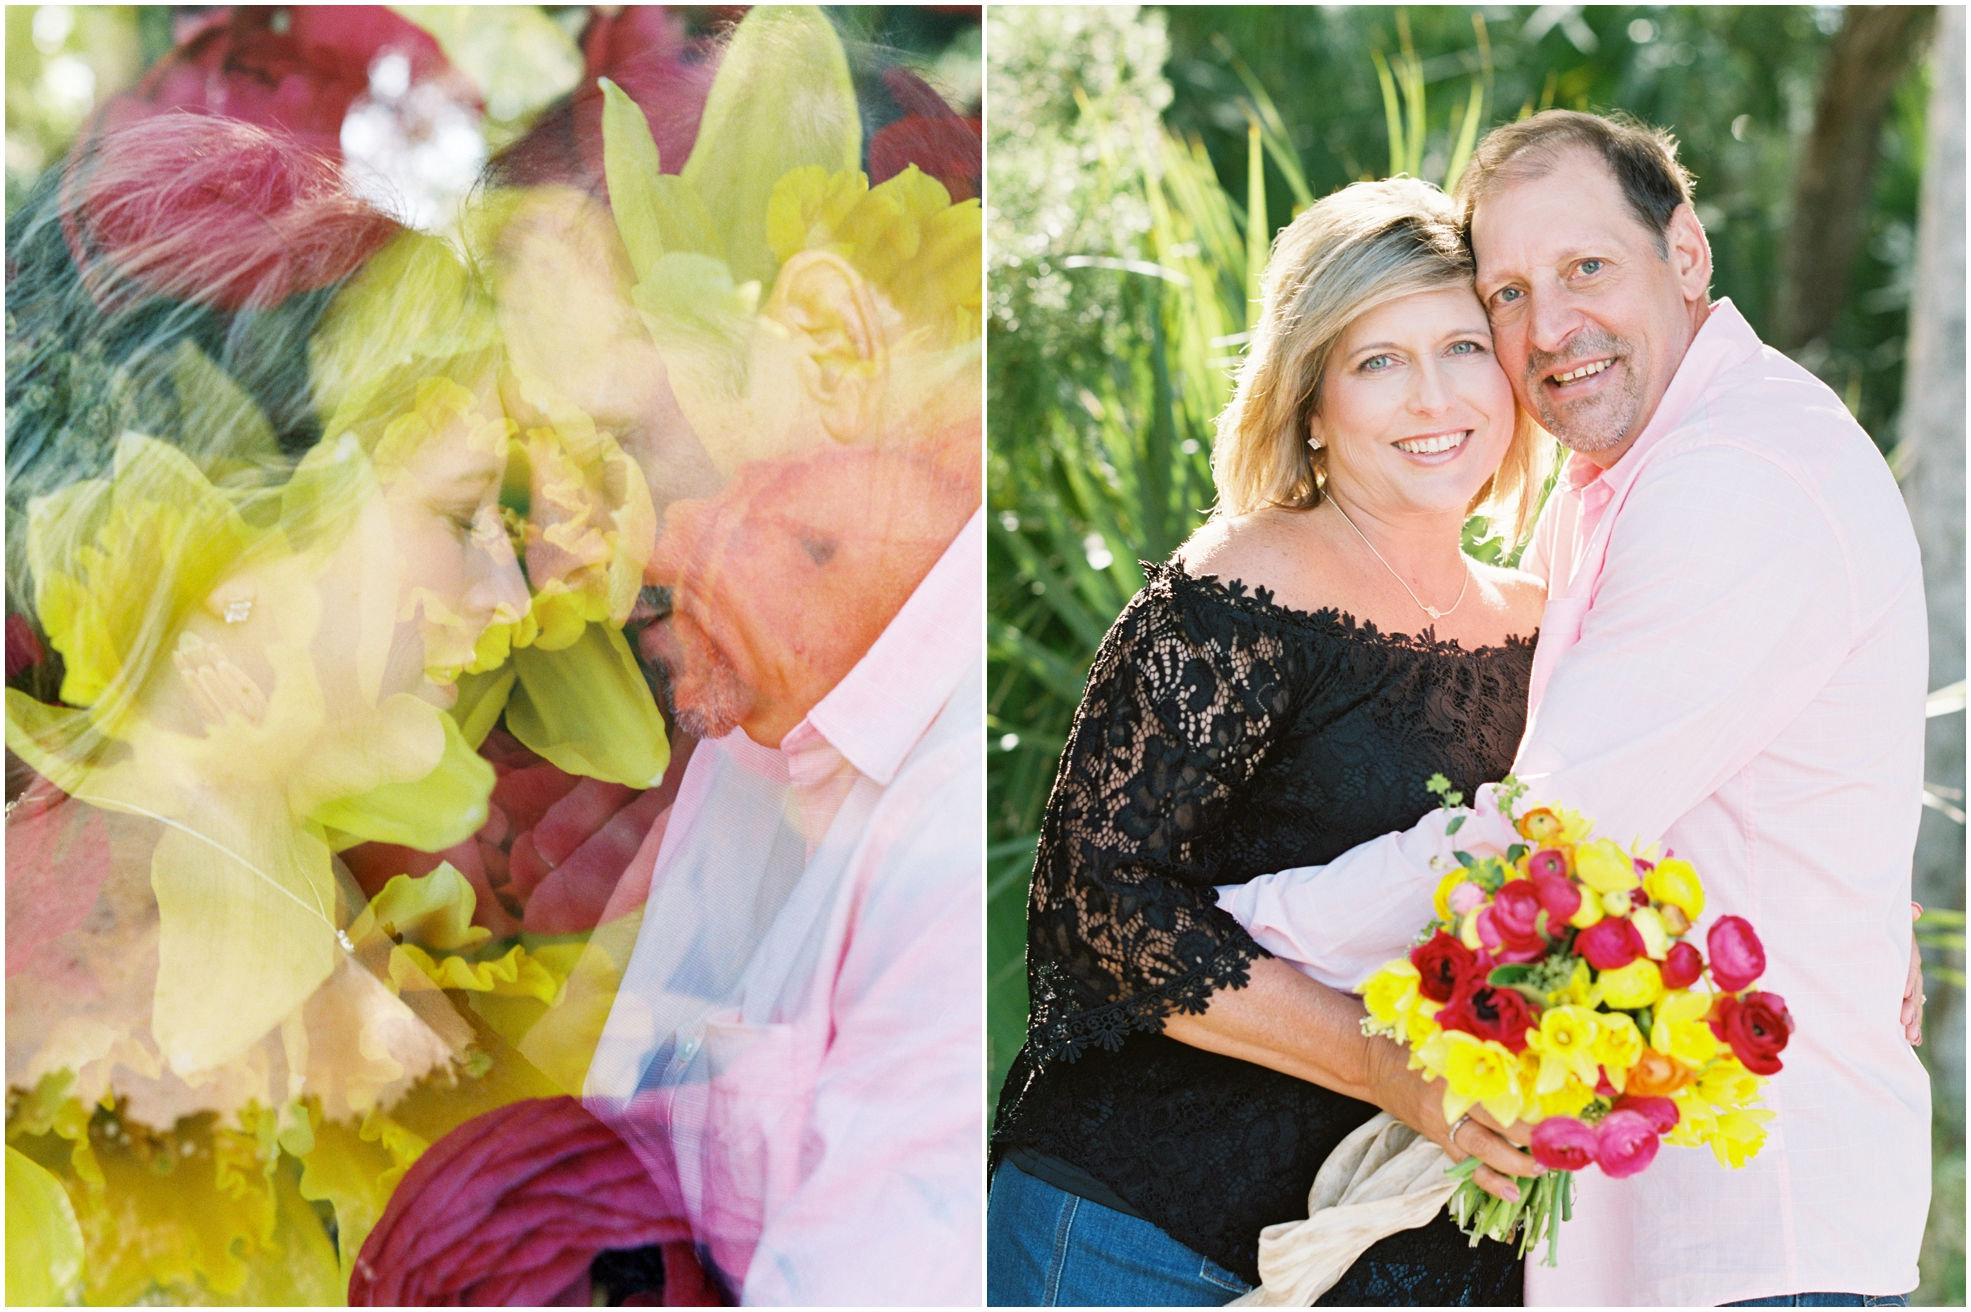 Lisa Silva Photography- Jacksonville, St. Augustine, Amelia Island, Ponte Vedra Beach, North East Florida Fine Art Film Photographer- Anniversary Session at Washington Oaks in Palm Coast, Florida_0097.jpg